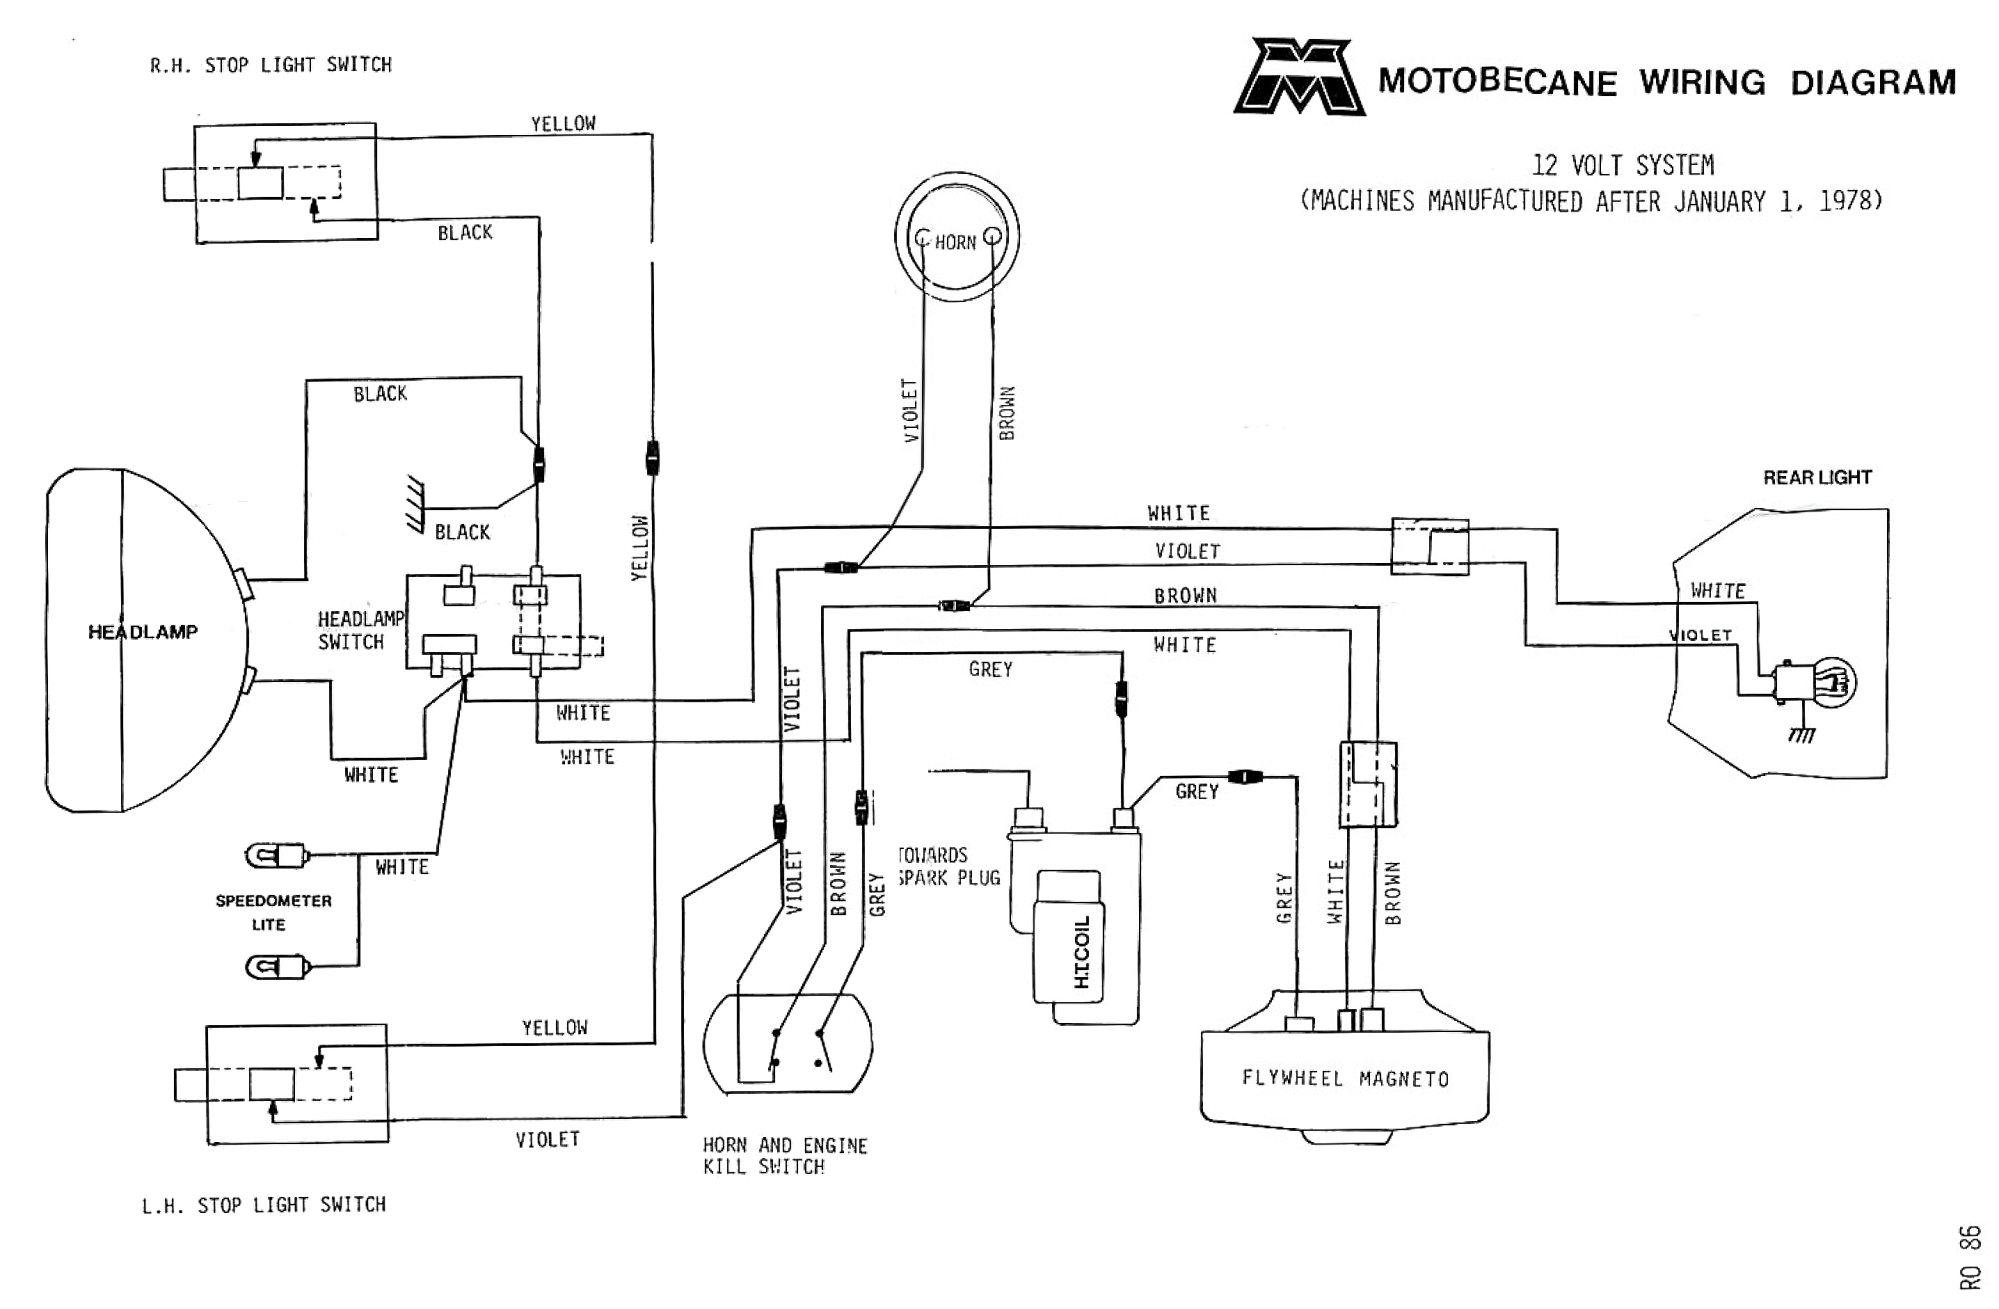 hight resolution of motobecane wiring diagrams moped wiki 12 volt winch wiring diagram 12 volt wiring diagram